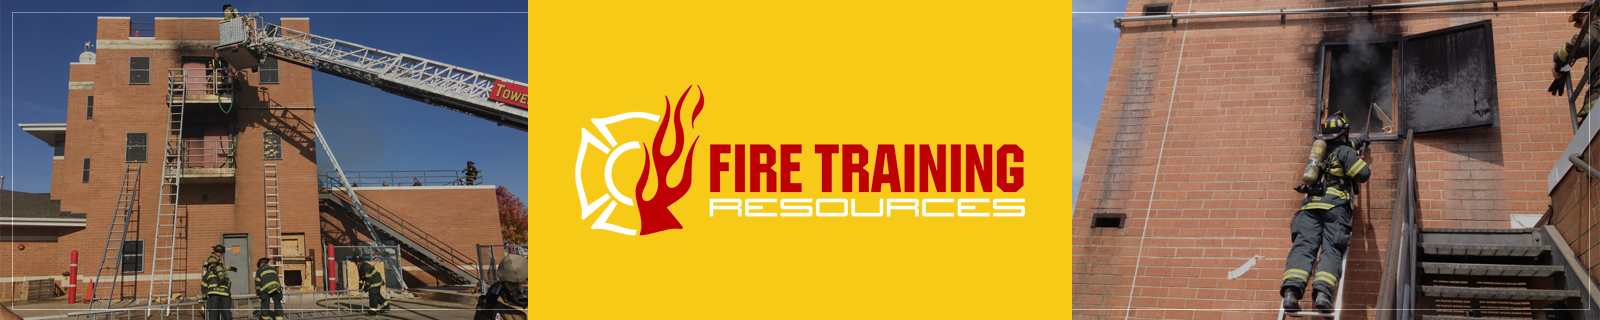 Machinery Rescue Operations Course Class 2 - Waukesha, WI